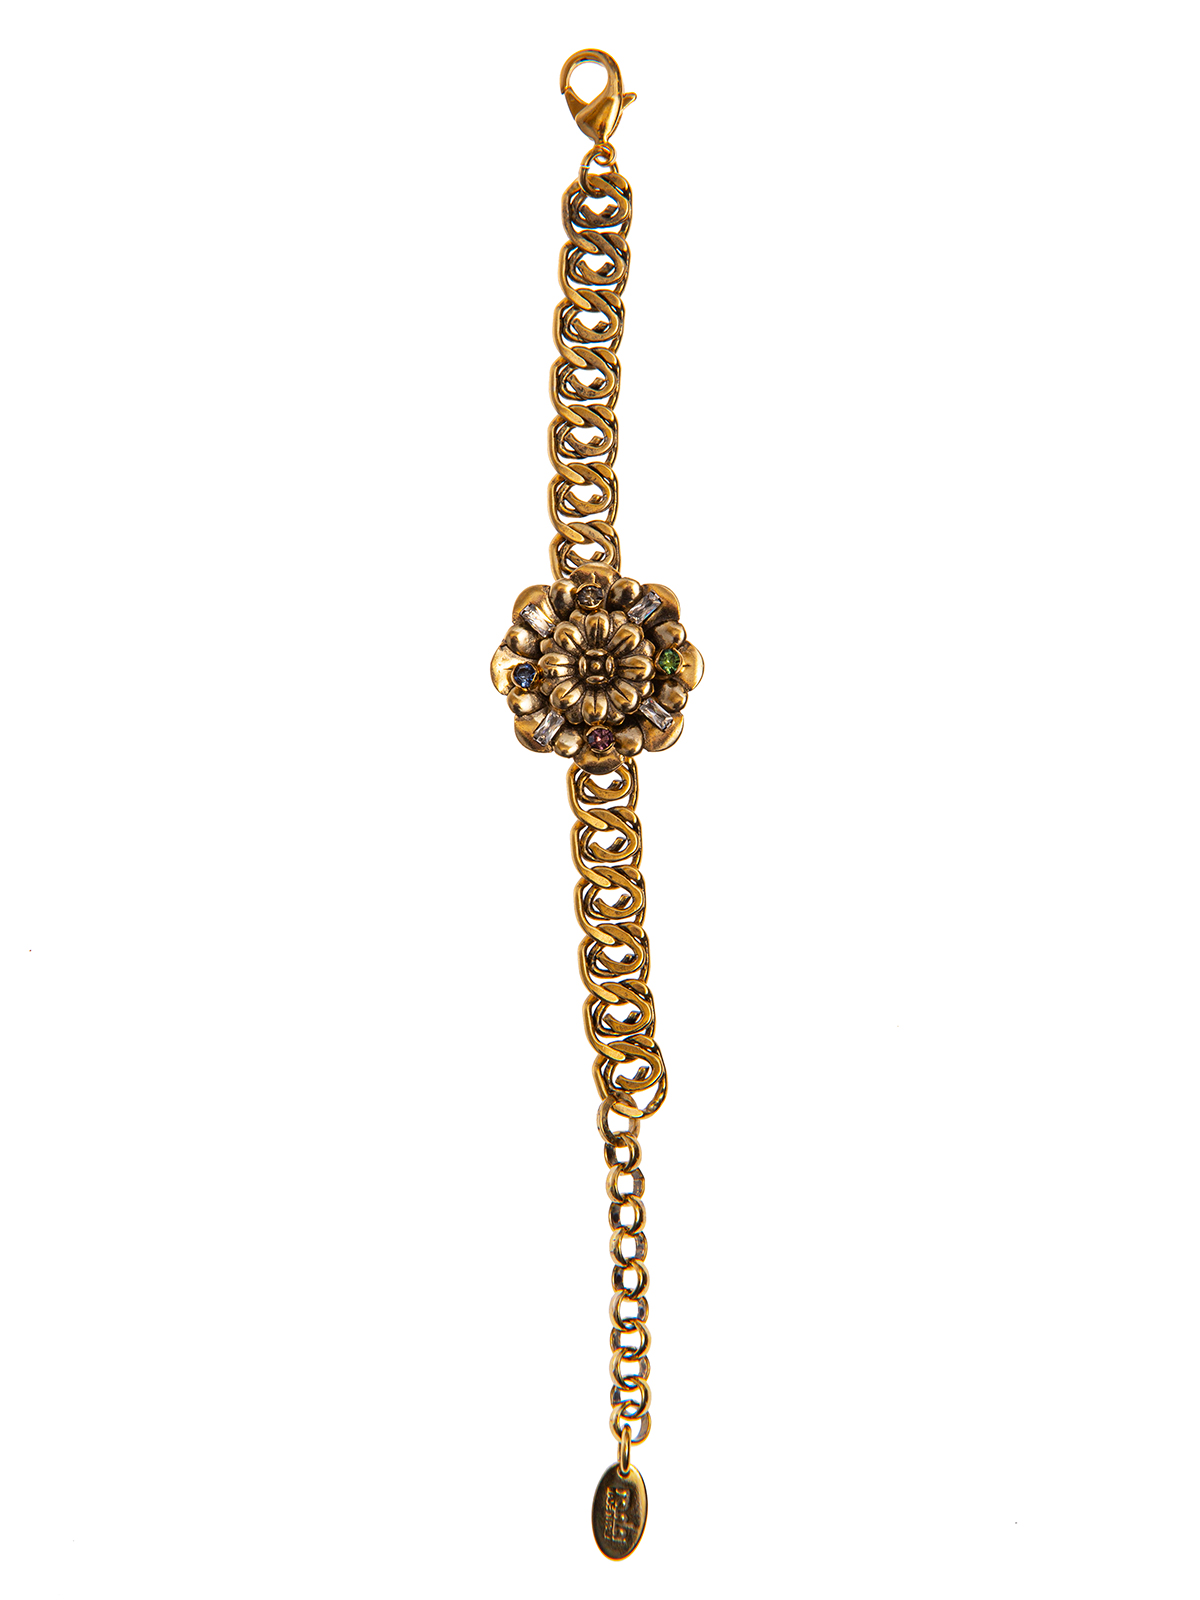 Chain bracelet with central flower embellished with multicolor stones